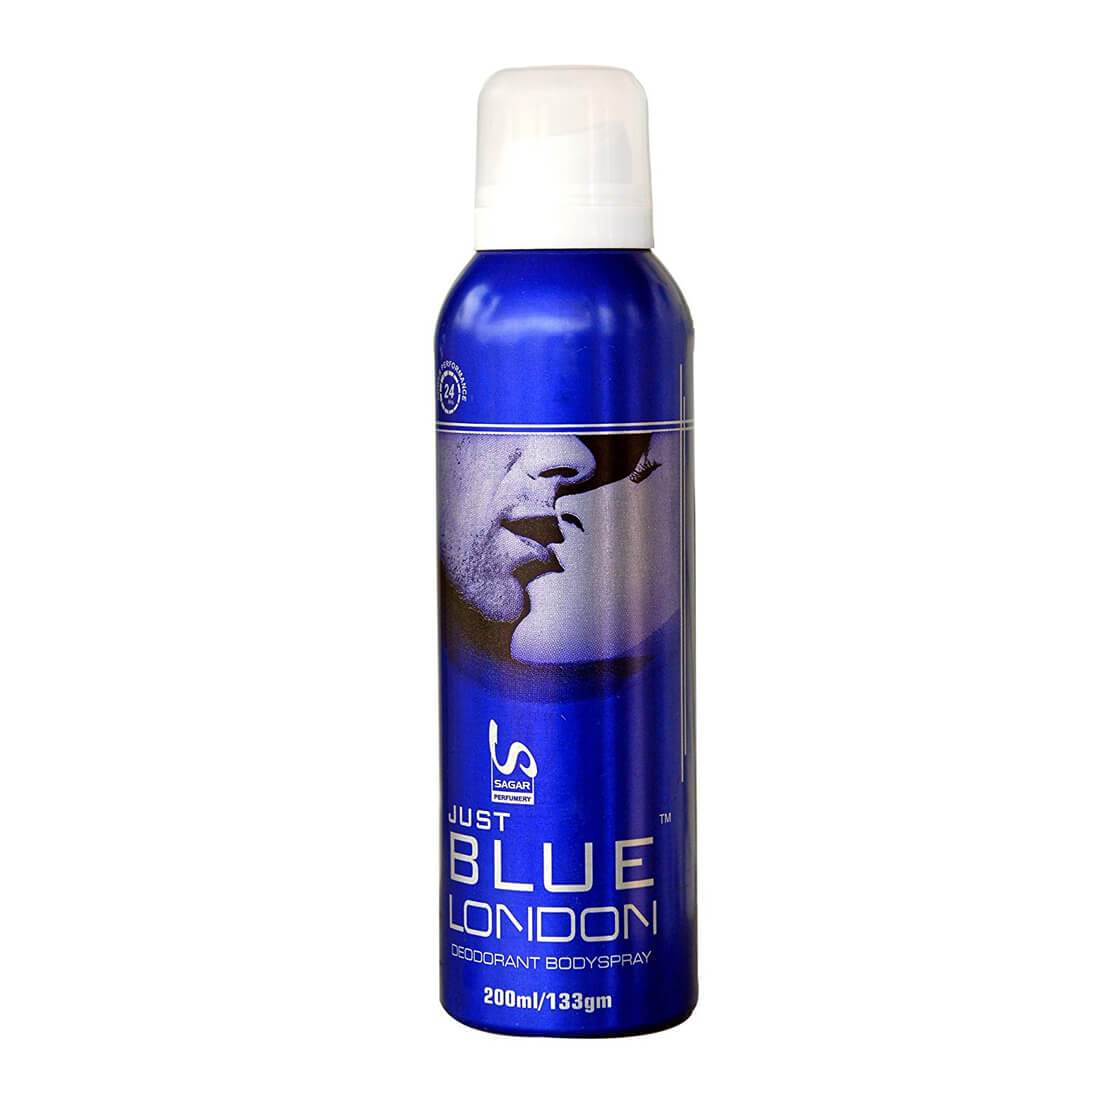 London Blue Deodorant Body Spray 200ml